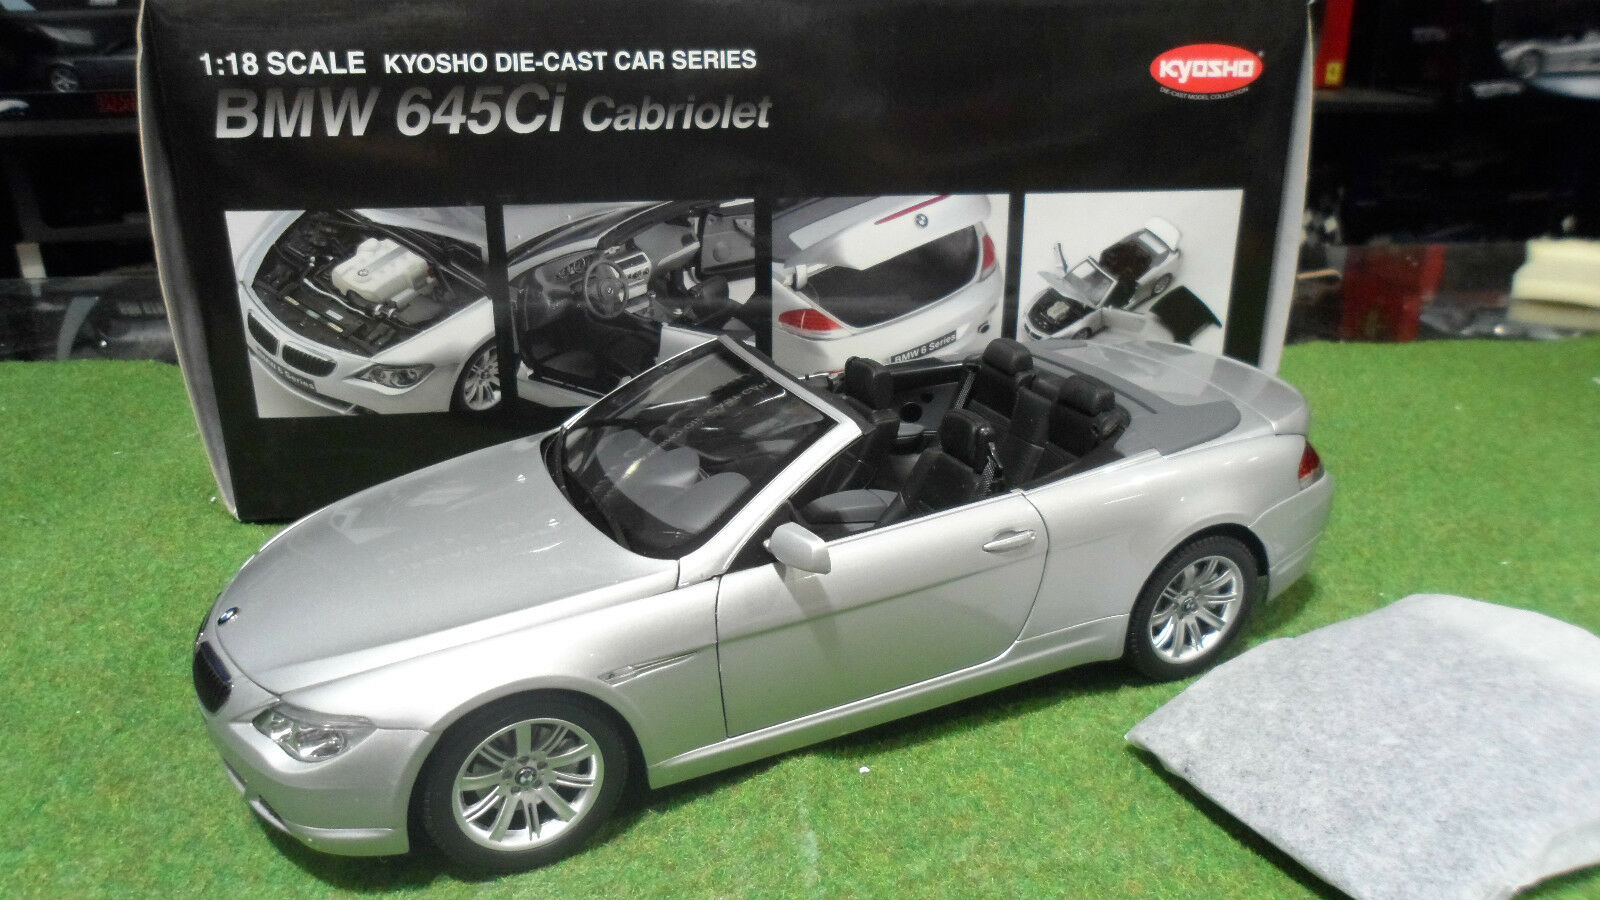 BMW 645 Ci Cabriolet Convertible 1/18  KYOSHO 08702S voiture miniature collectio